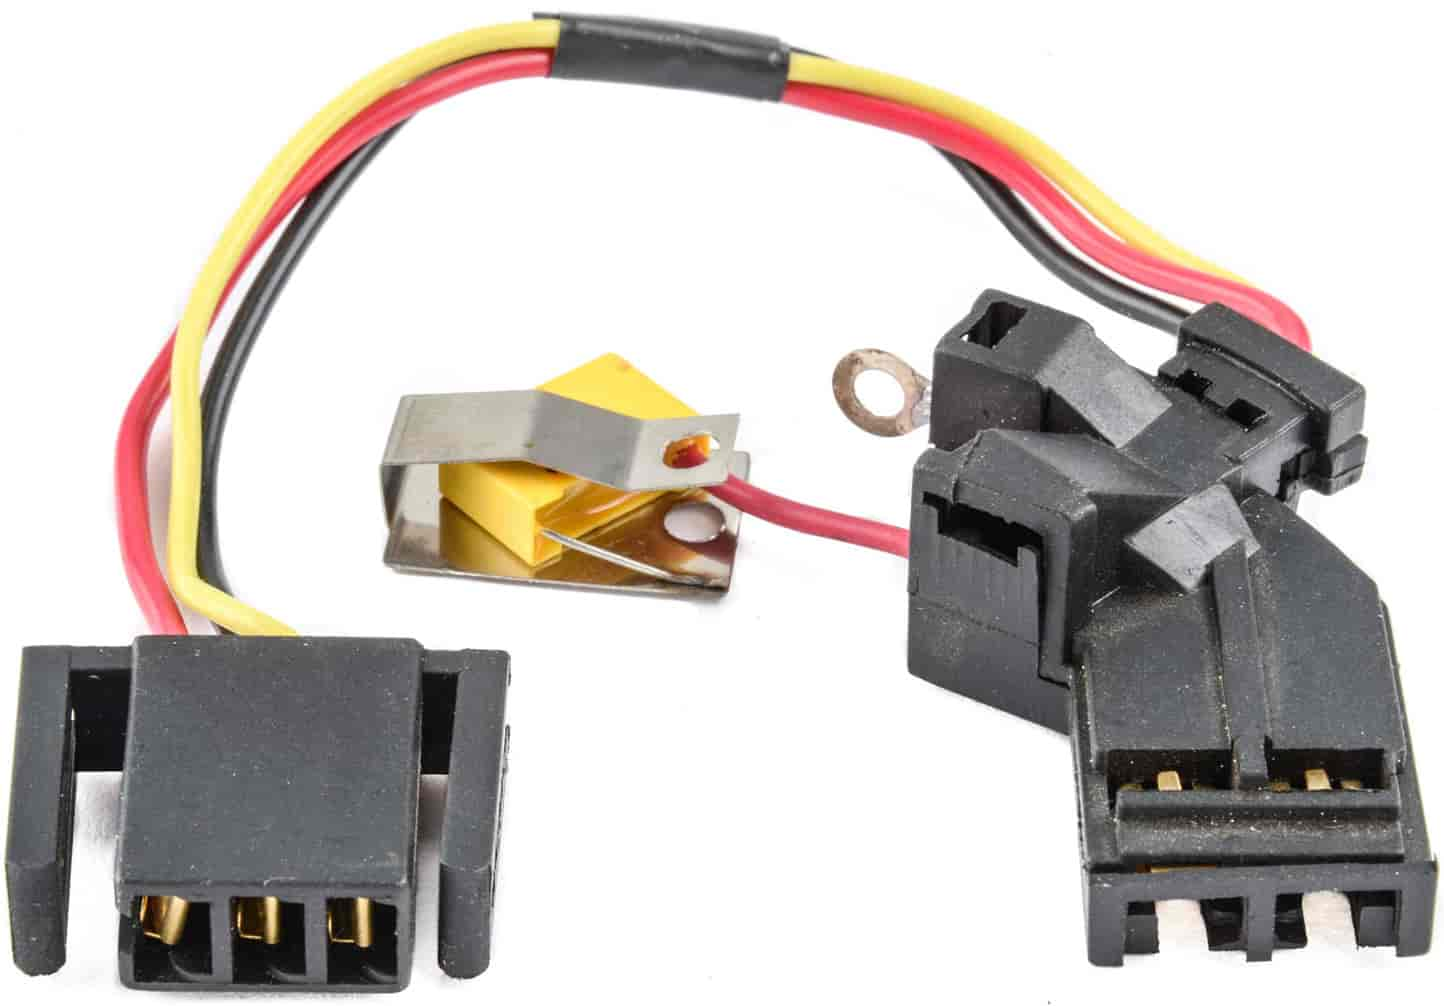 [DIAGRAM_34OR]  JEGS 40609: HEI Wiring Harness Replaces Harness That Fits Between Cap & OE  Style 4-Pin HEI Module | JEGS | Delco Hei Wiring Harness |  | Jegs